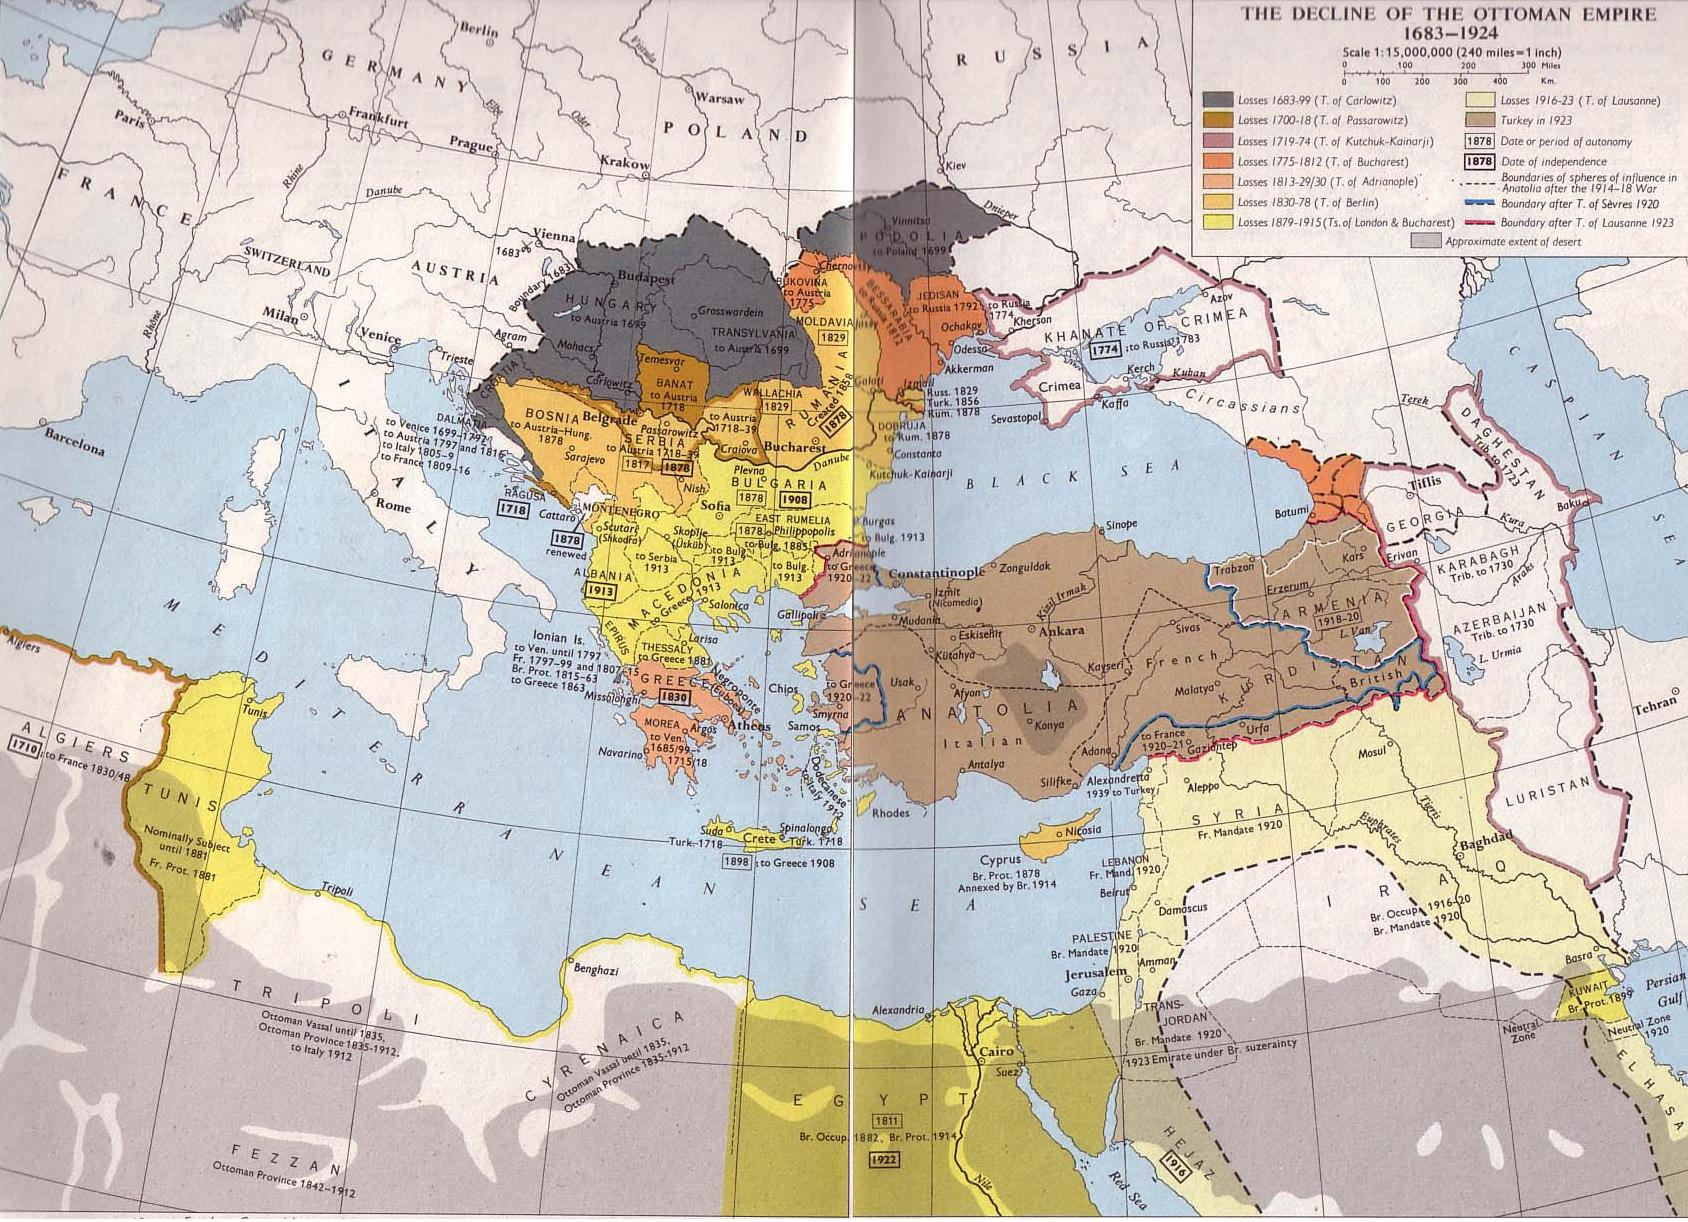 The decline of the Ottoman Empire 1683-1924